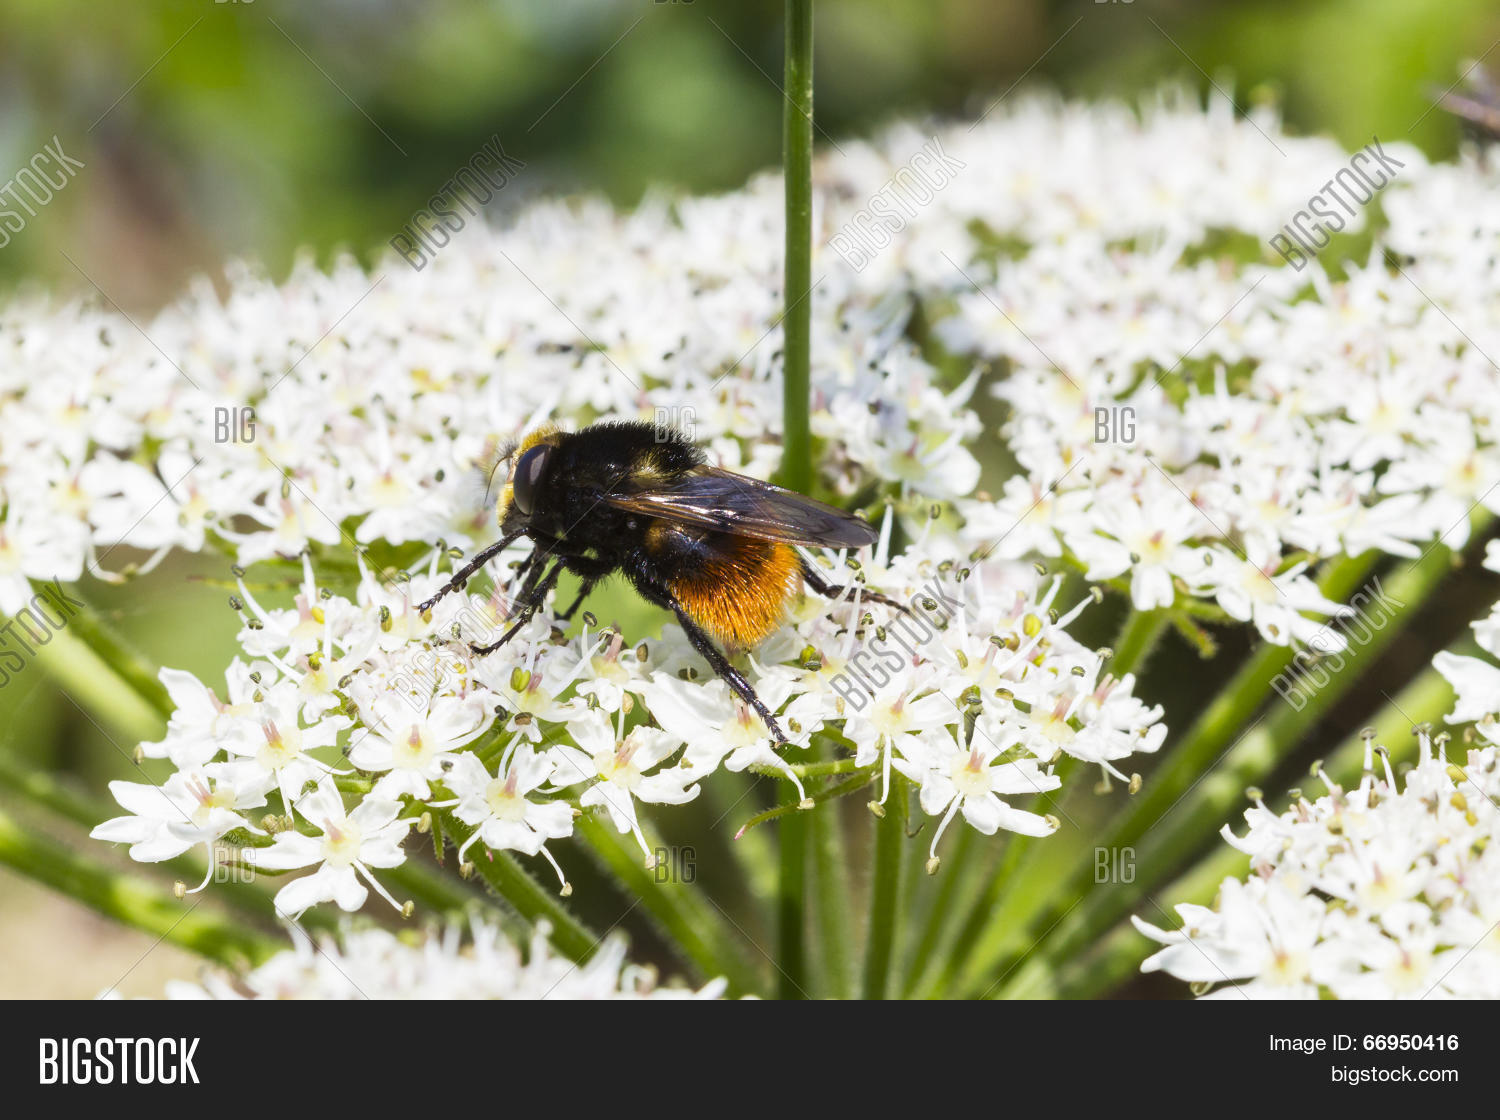 a study of the possible impact of the western bumble bee if introduced in the wild Patterns of widespread decline in north  patterns of widespread decline in north american bumble bees  possible causal factors of bumble bee decline is.